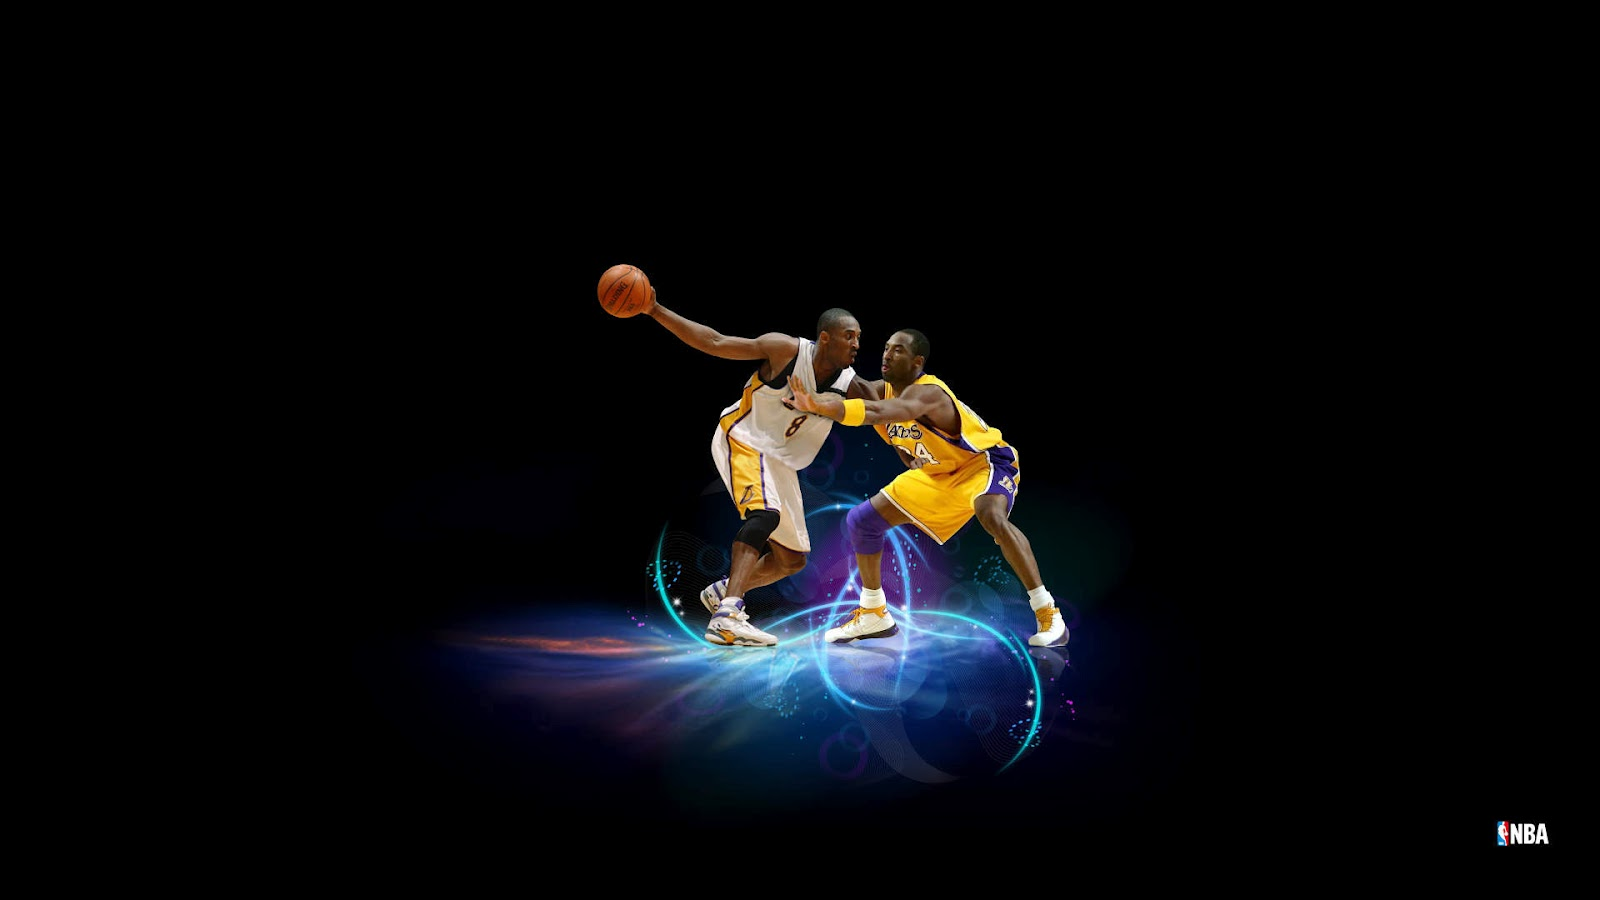 Wallpaper collection for your computer and mobile phones - Cool basketball wallpapers hd ...